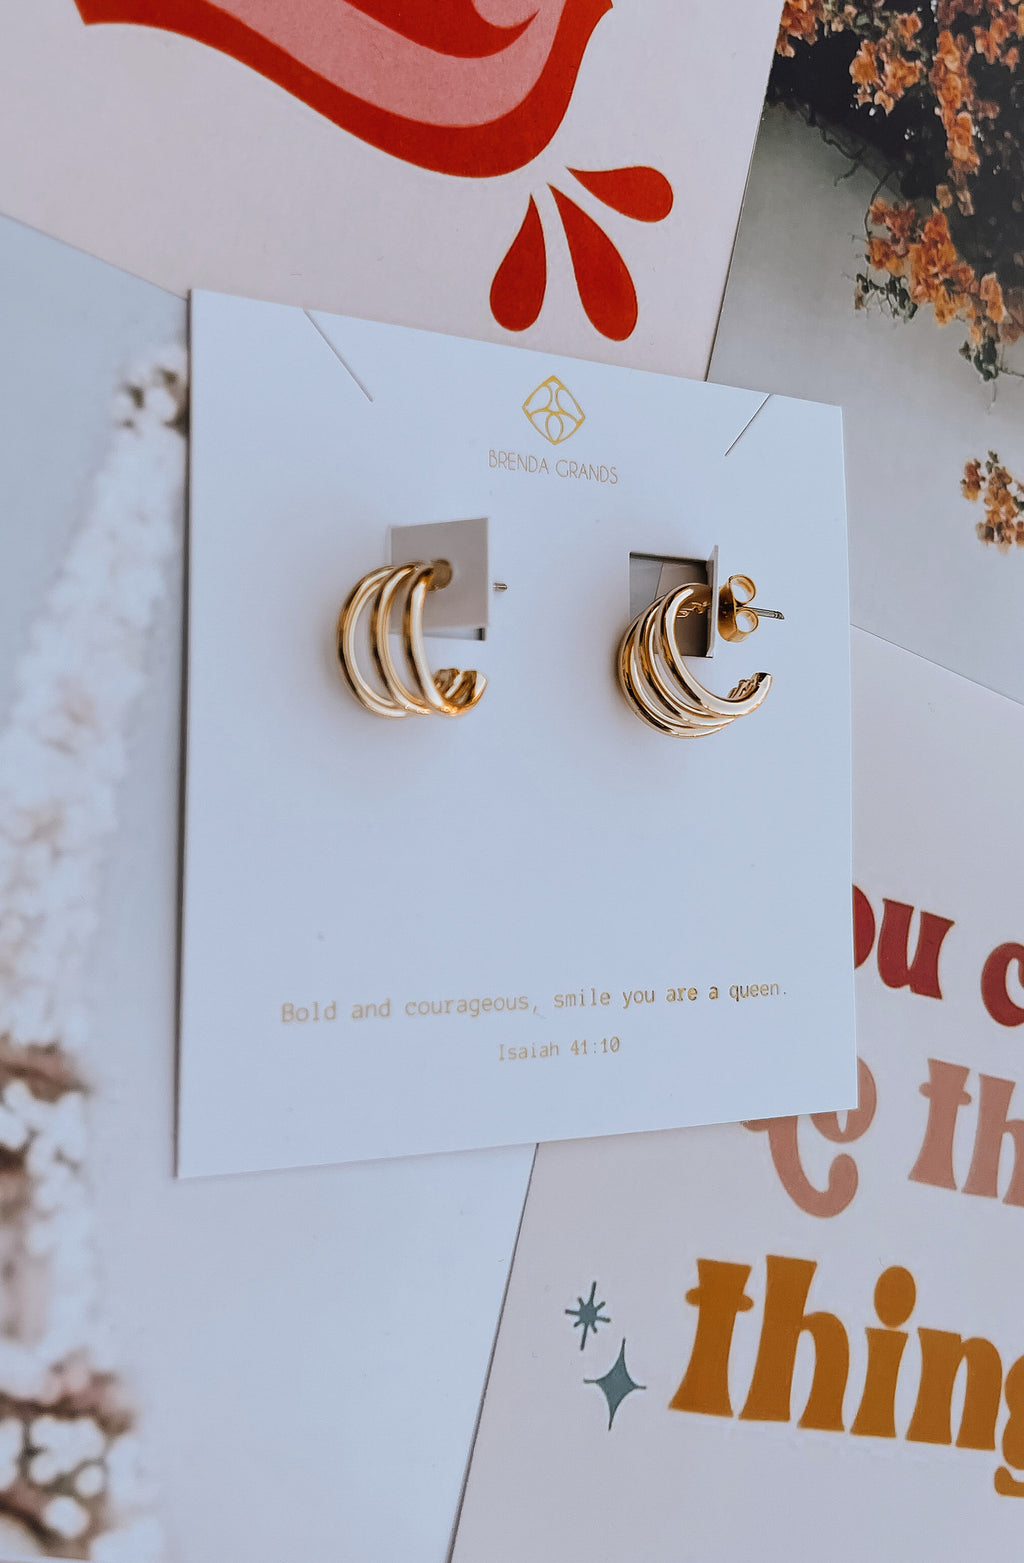 BRENDA GRAND'S CAPIRLA SMALL HOOP EARRINGS